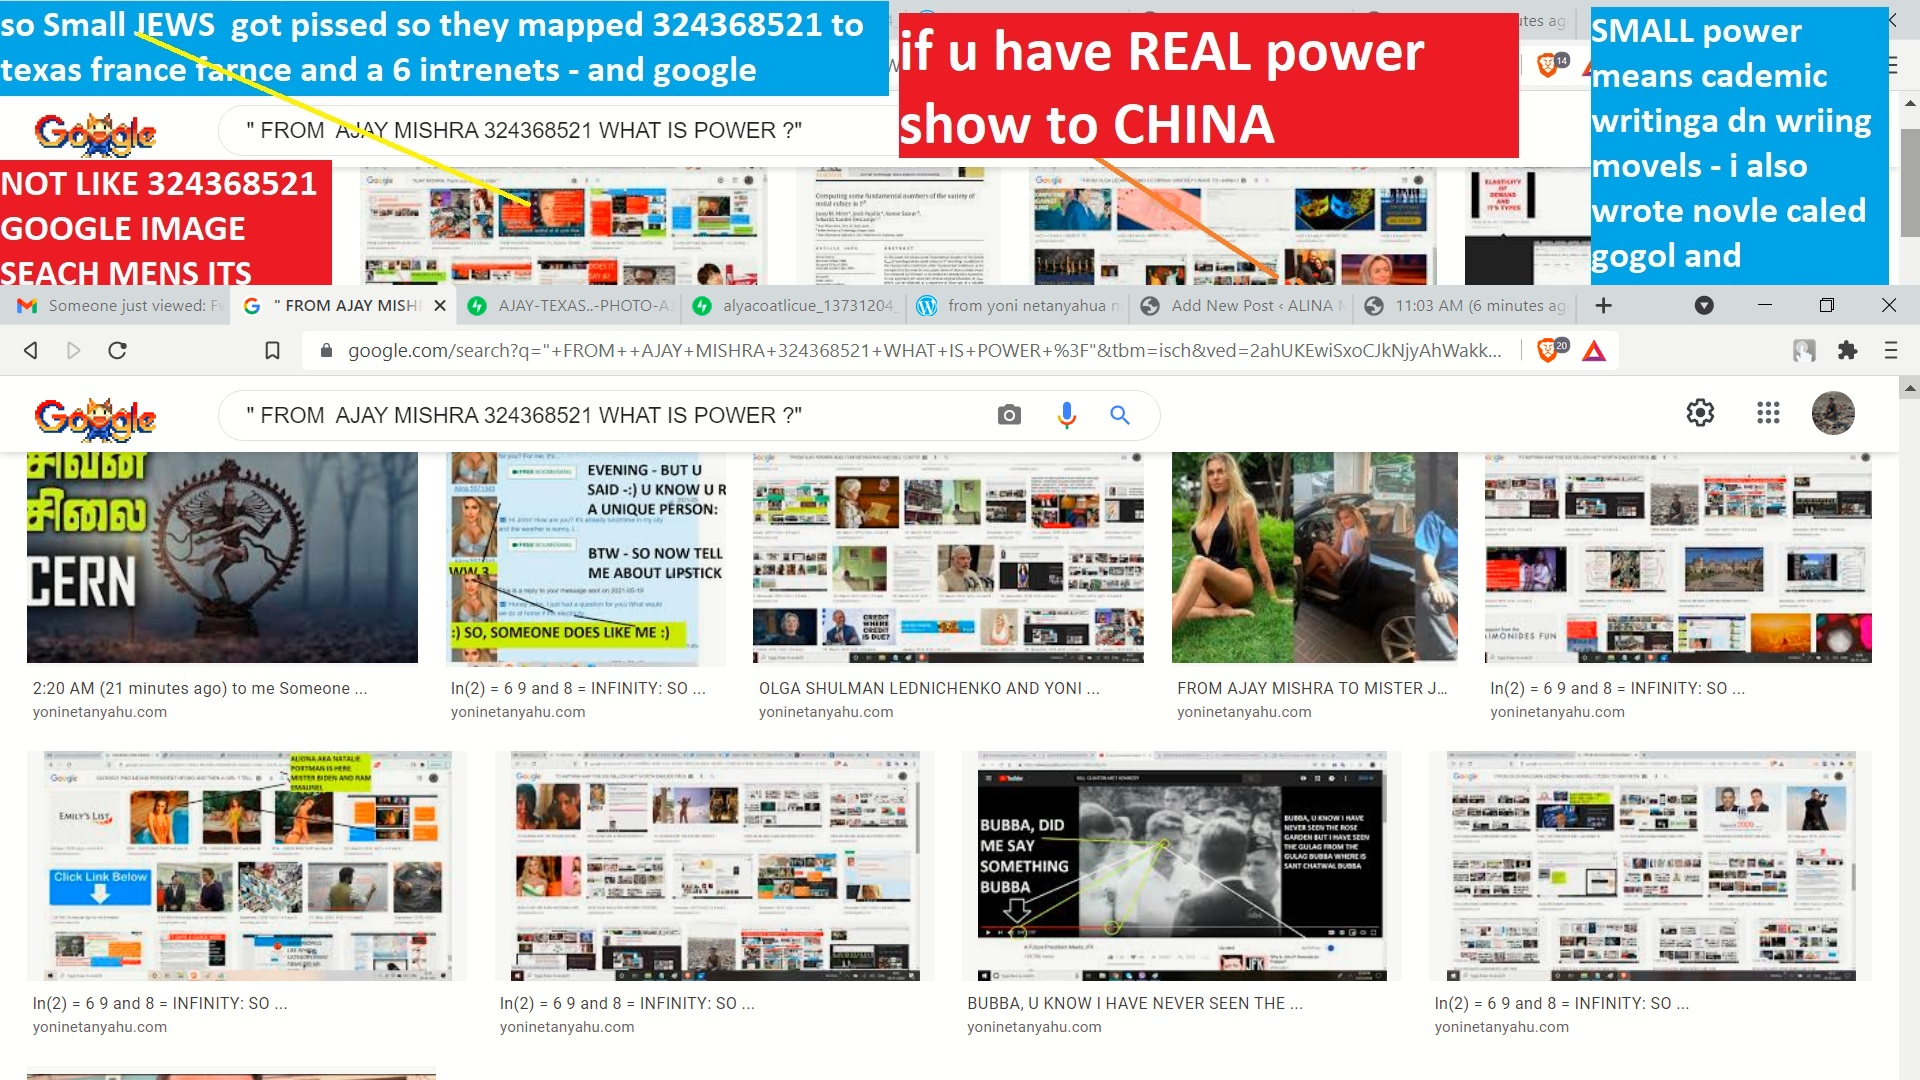 AJAY MISHAR ALINA MATSENKO THIS IS EXAMPLE FO REAL POWER - AND CHALLENGE TO SHOW POWER IF U CAN I HAVE SHOWN SMALL POWER AS EXPRESED IN THESE IMAGES --